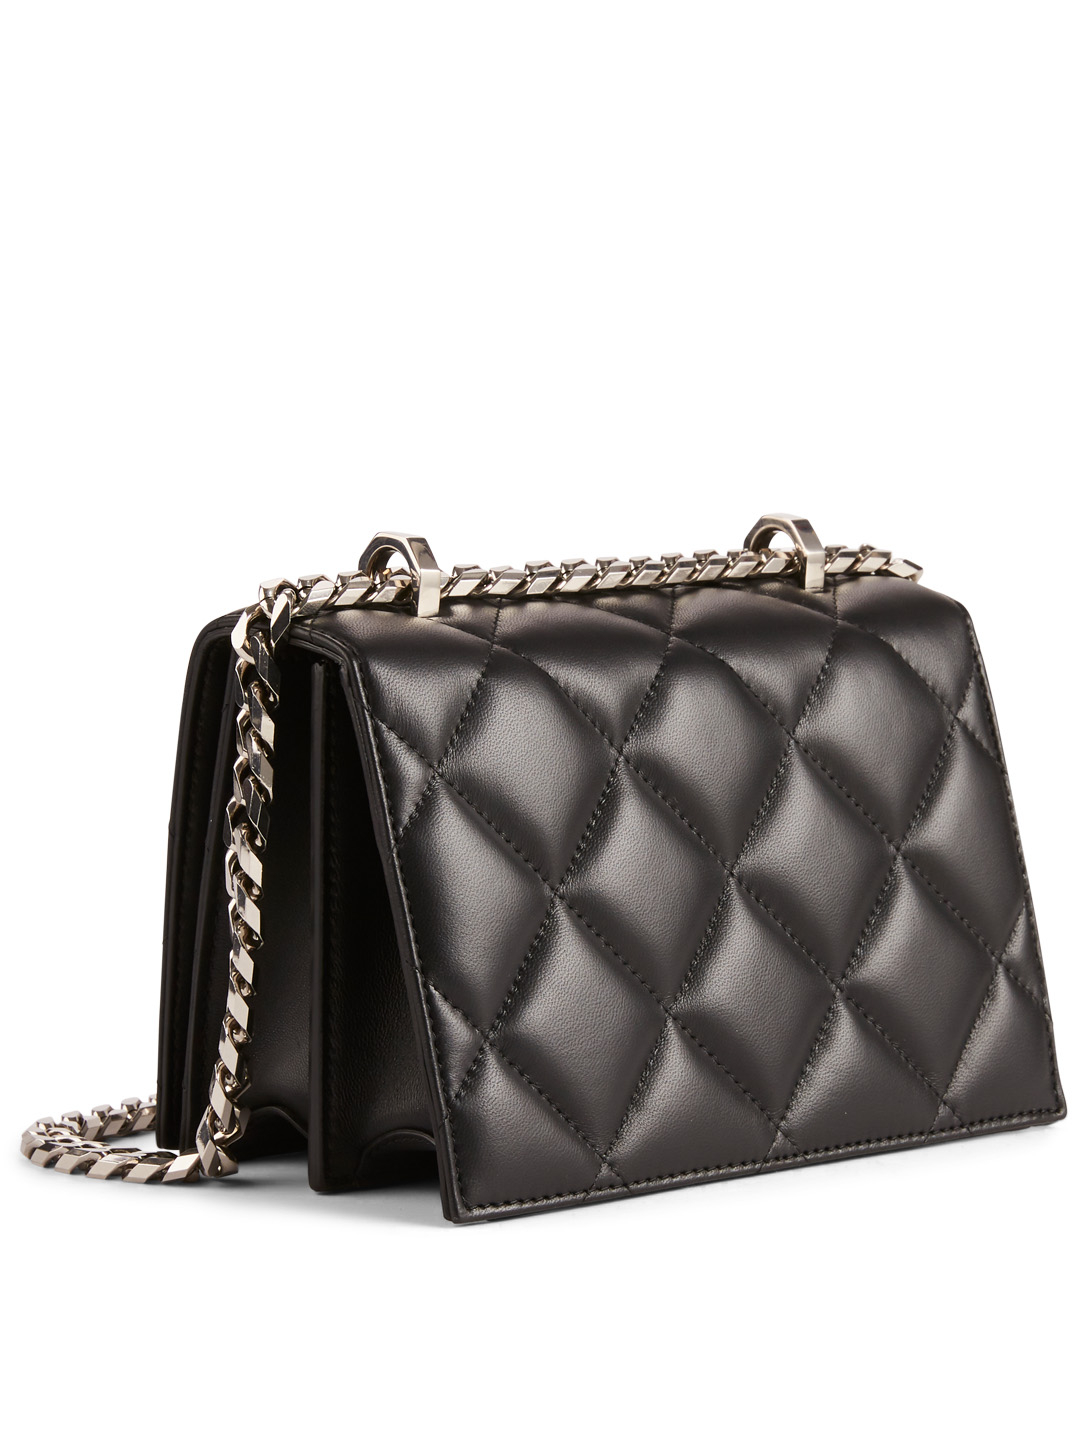 ALEXANDER MCQUEEN Small Quilted Leather Crossbody Bag Women's Black